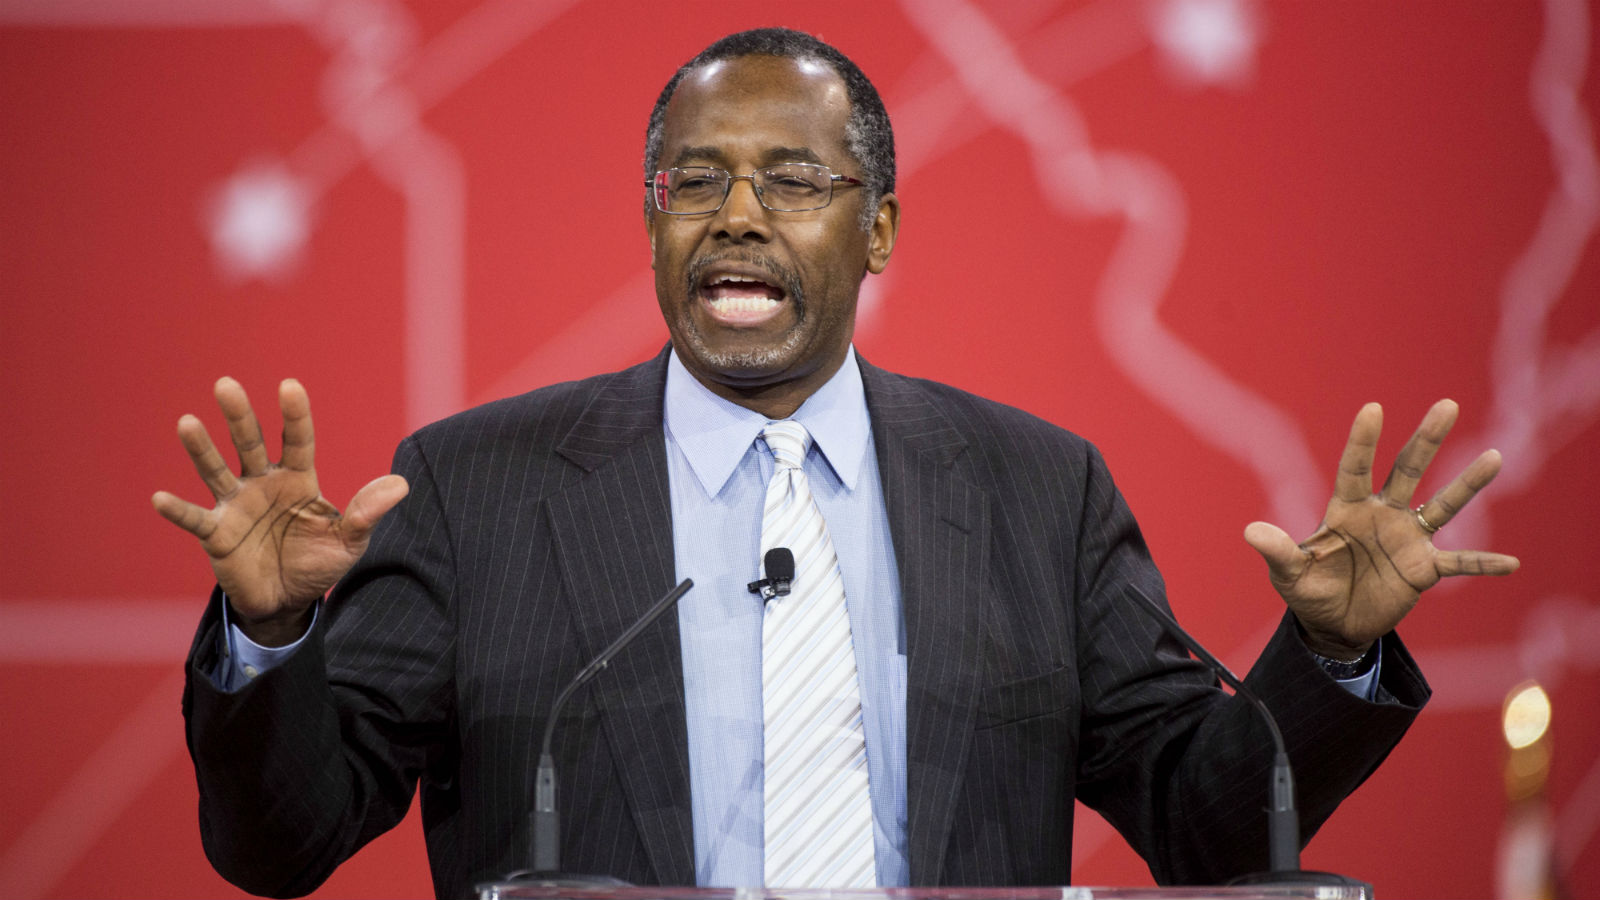 HUD's Ben Carson Eliminates Anti-Discriminatory Language From Depts. Mission Statement